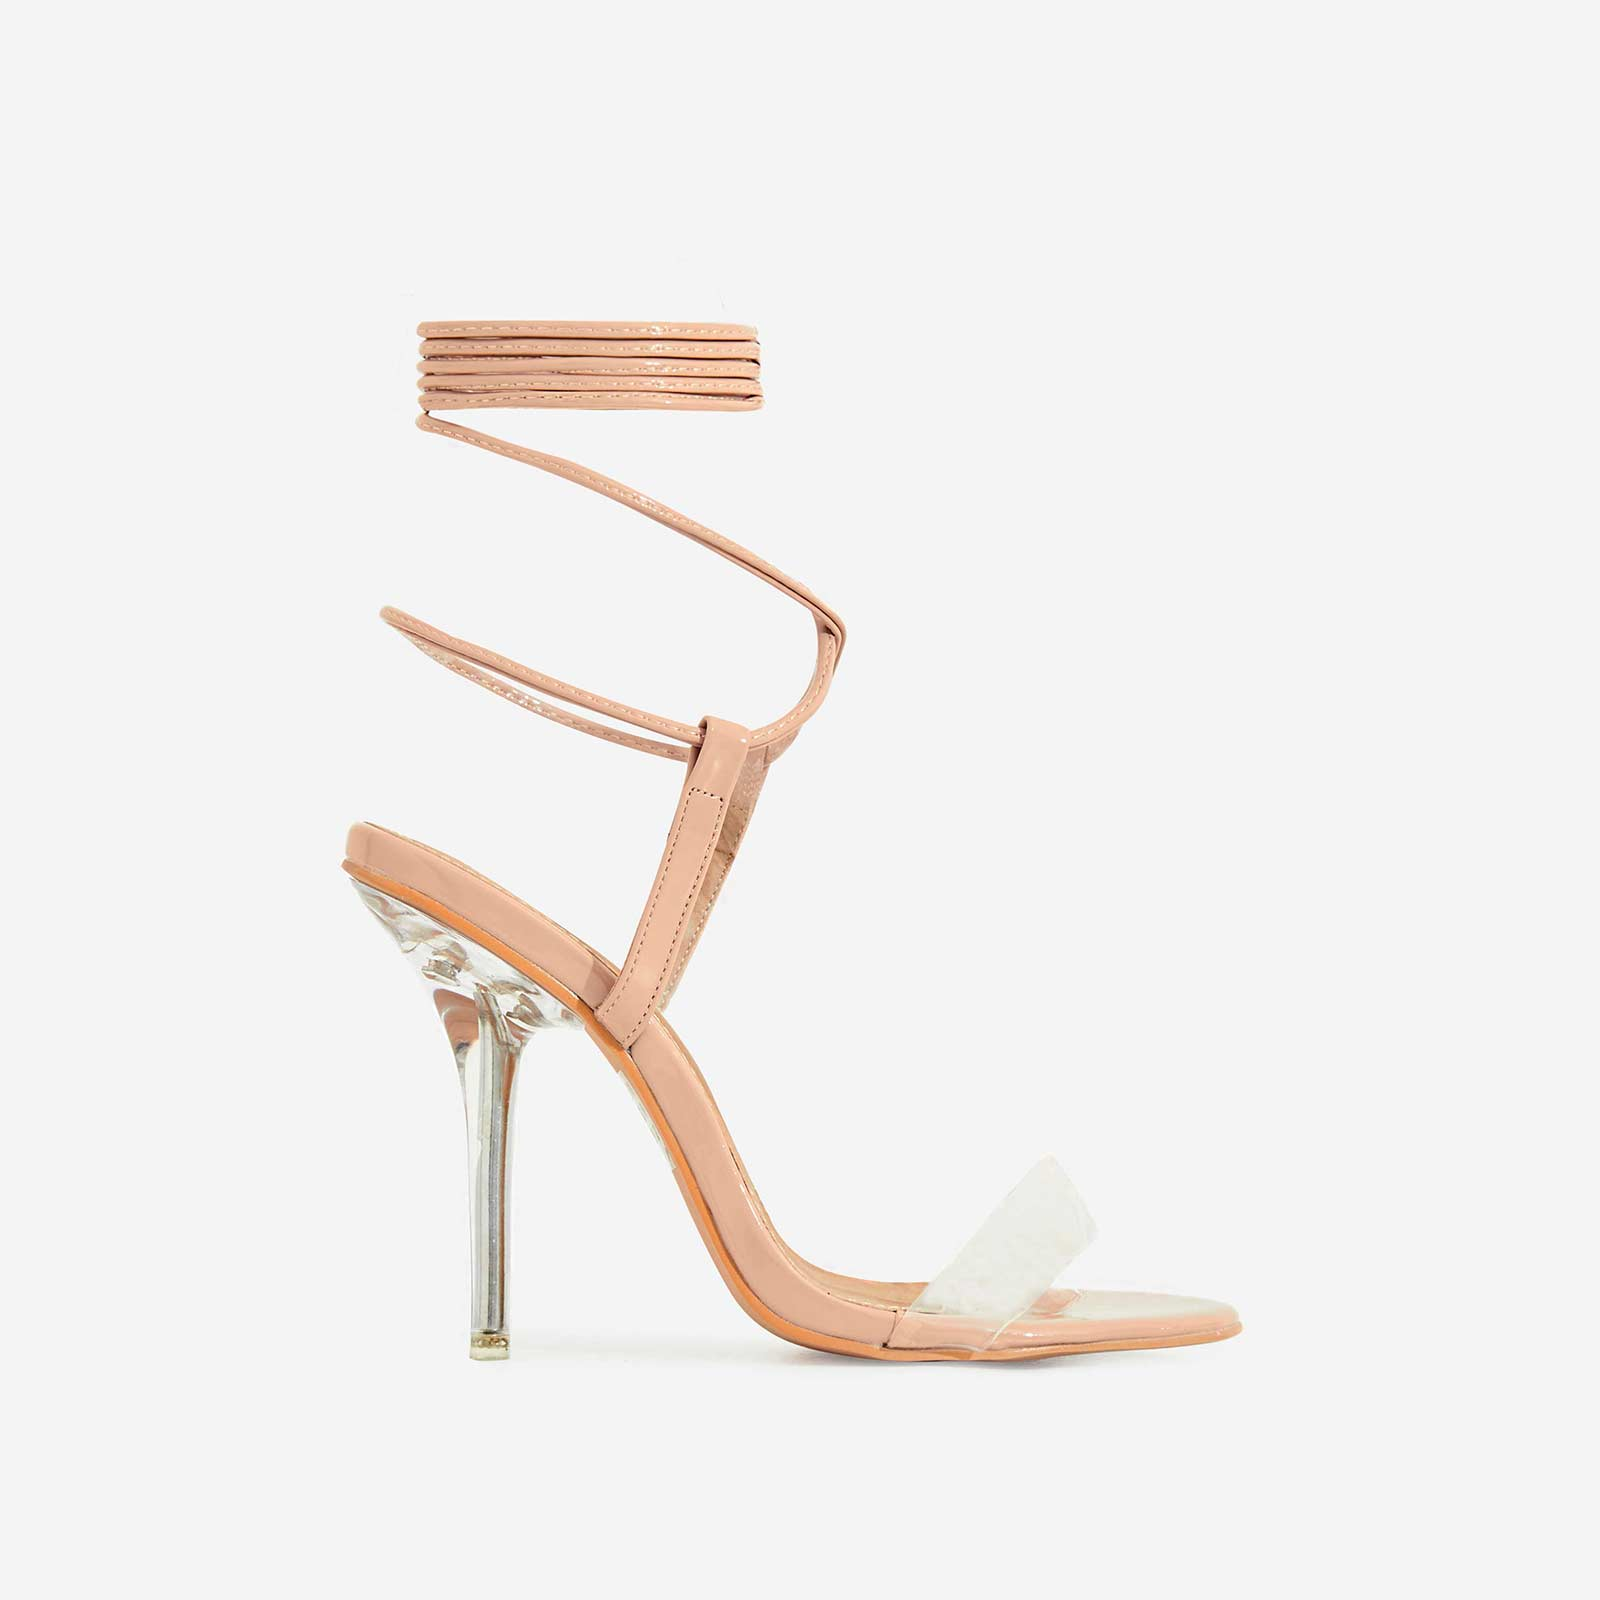 Rigby Lace Up Perspex Heel In Nude Patent